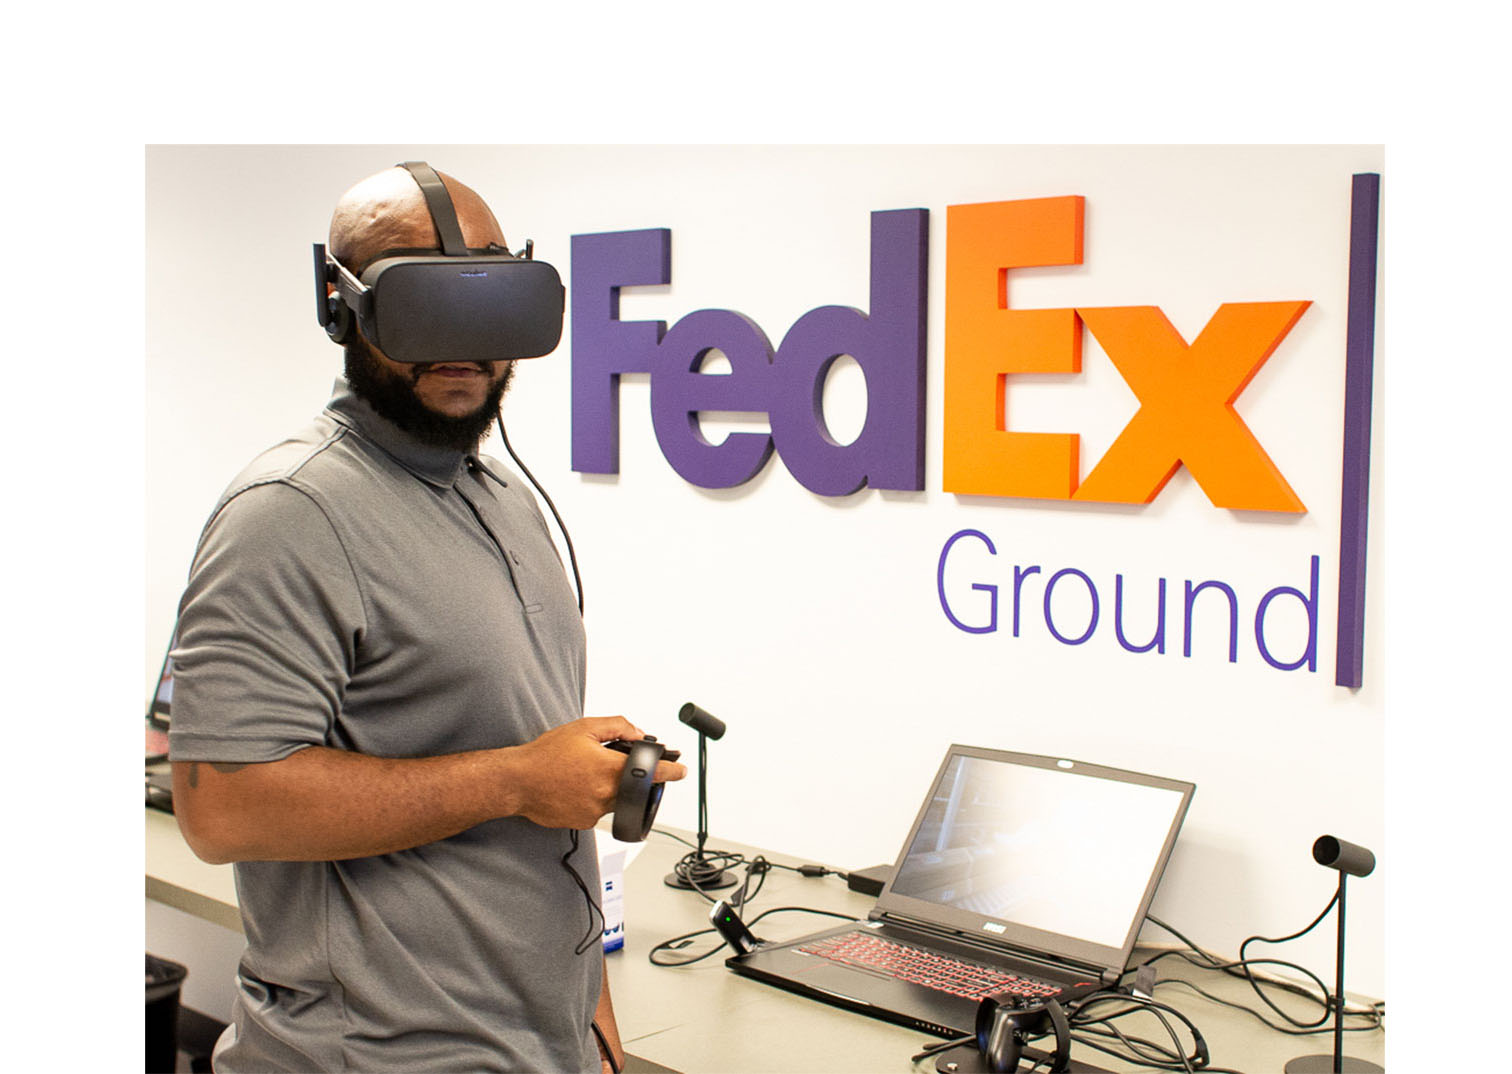 FedEx Using VR to Help Train Package Handlers